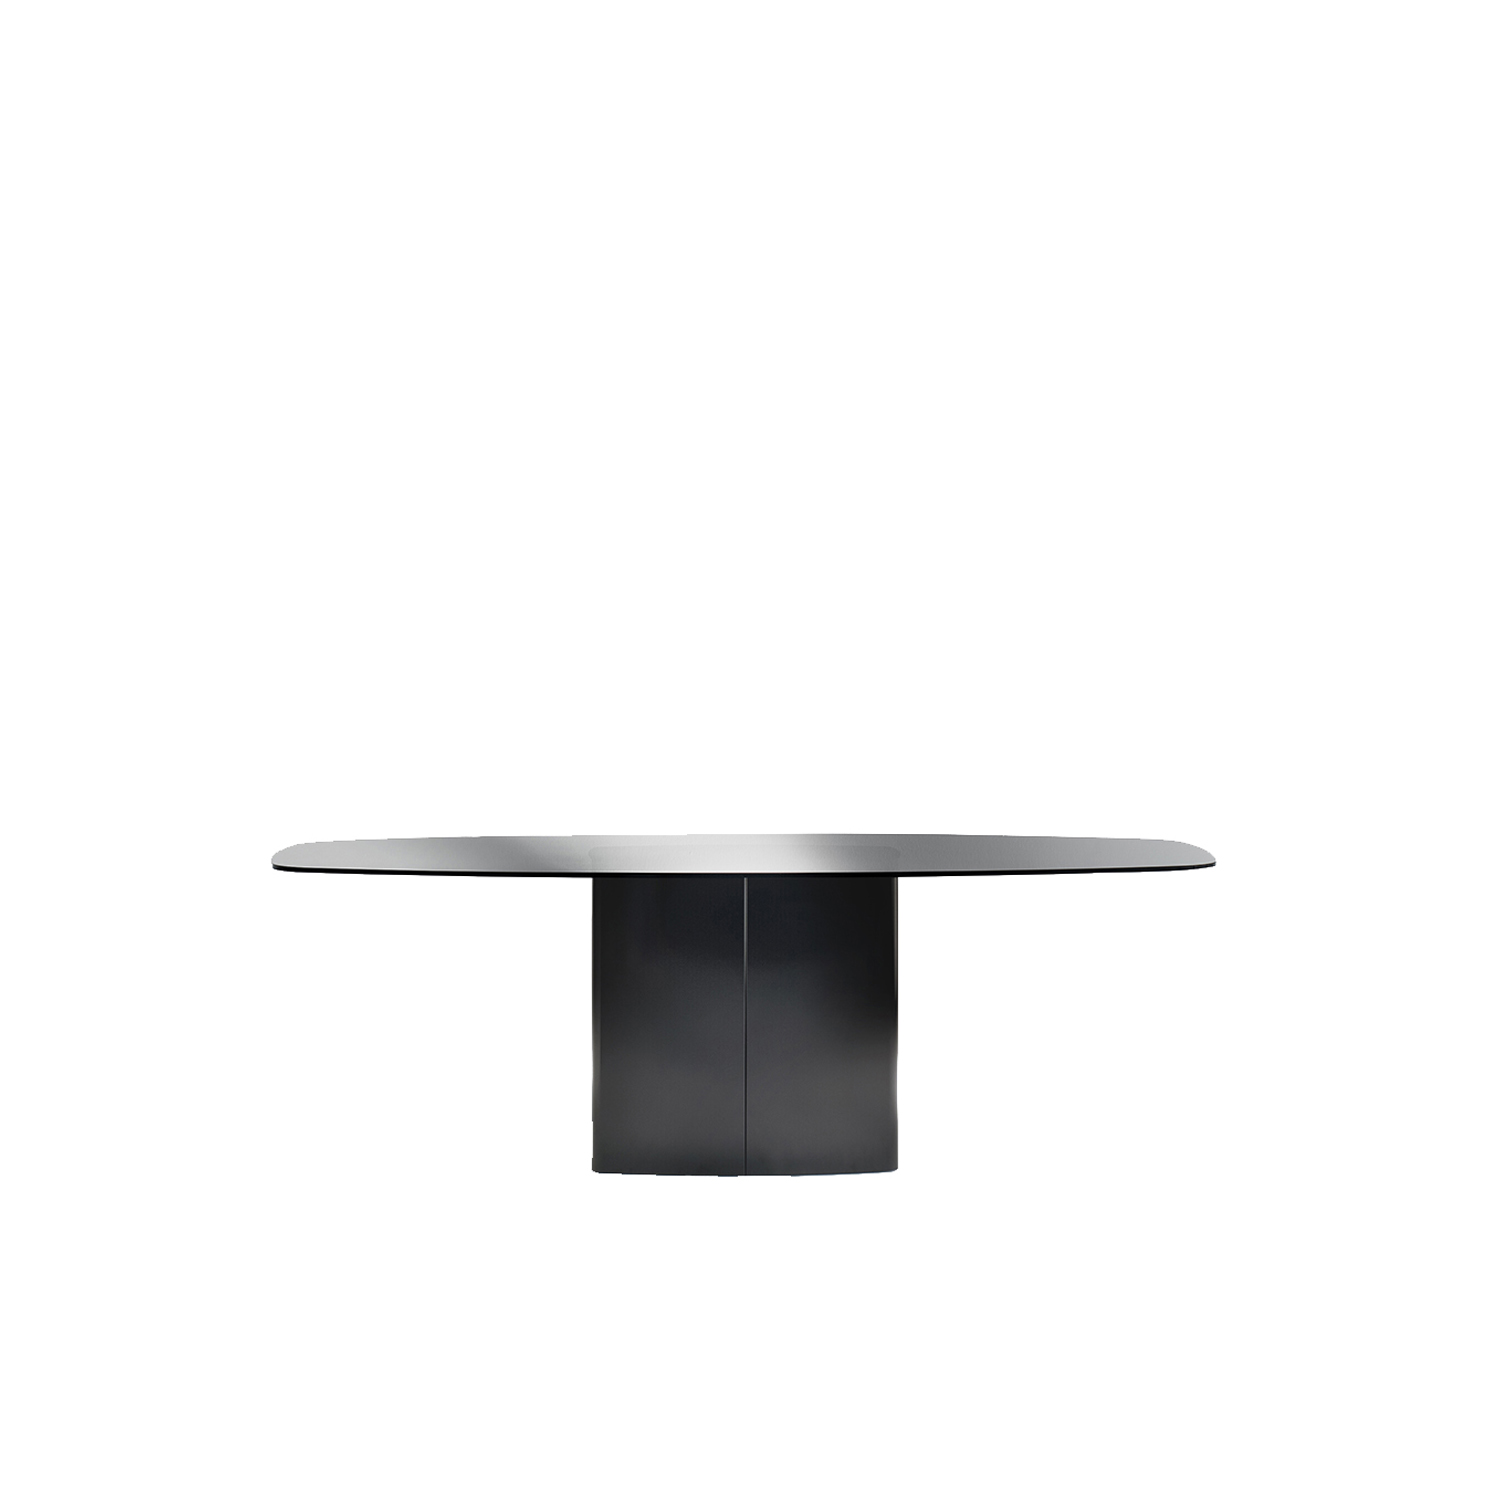 Aero Dining Table - Aero is a table with generous dimensions, simple in appearance but with a strong character. A steel cover split in two shells hides a central rectangular base with rounded corners combined with a refined glass or solid laminate top.